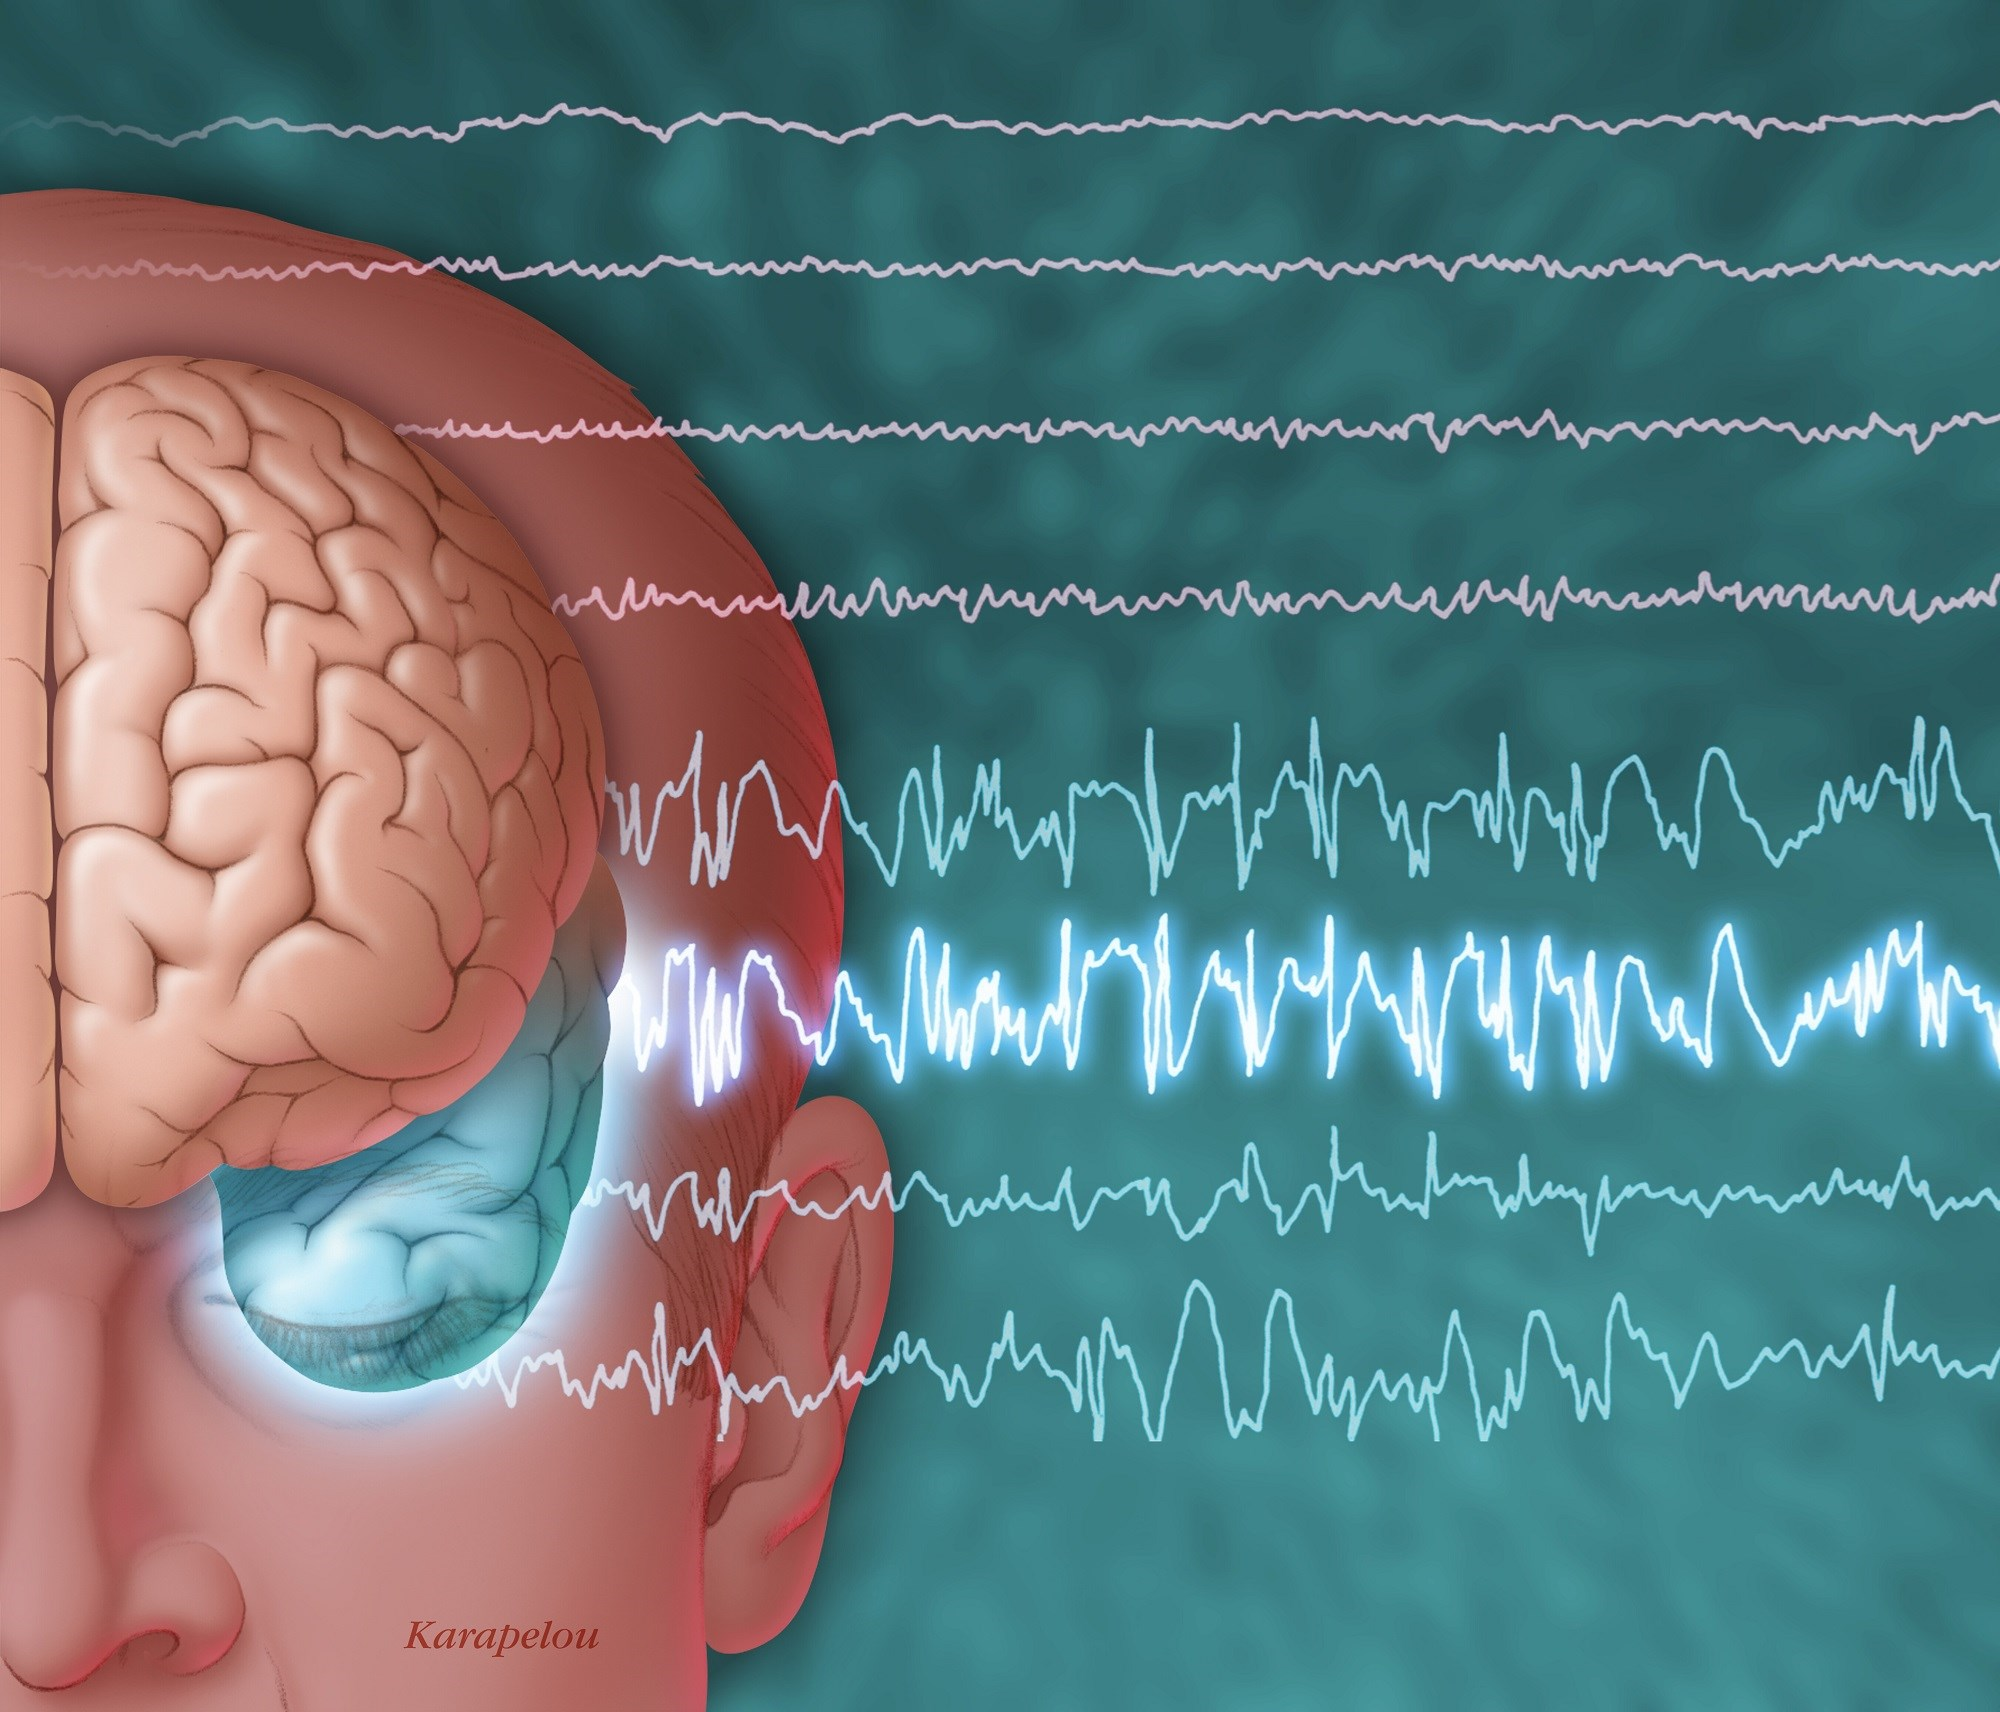 Psychotherapy May Reduce Frequency of Nonepileptic Seizures